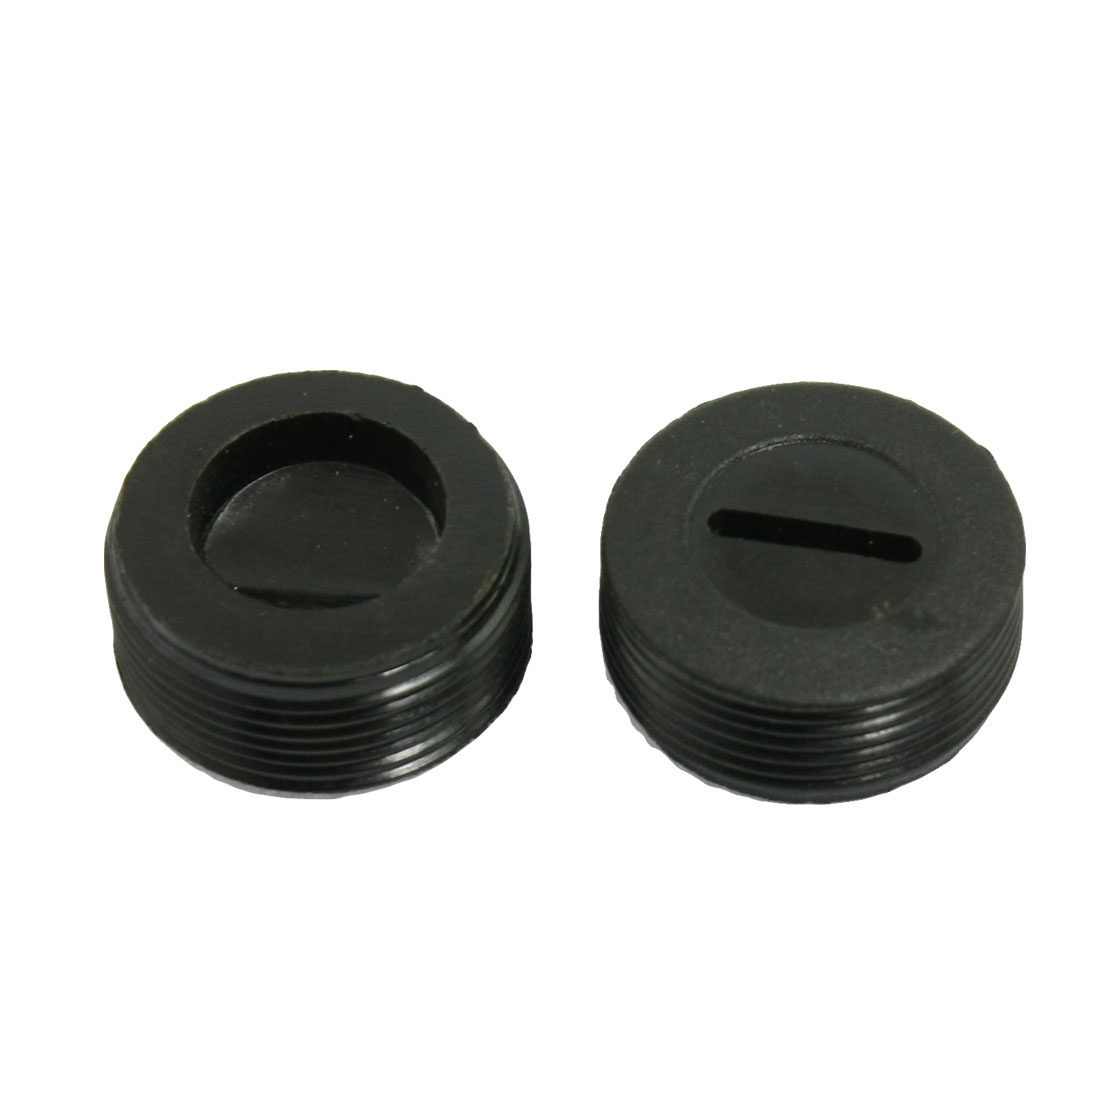 2 Pcs Threaded 20mm Diameter Carbon Brush Holder Back Cap